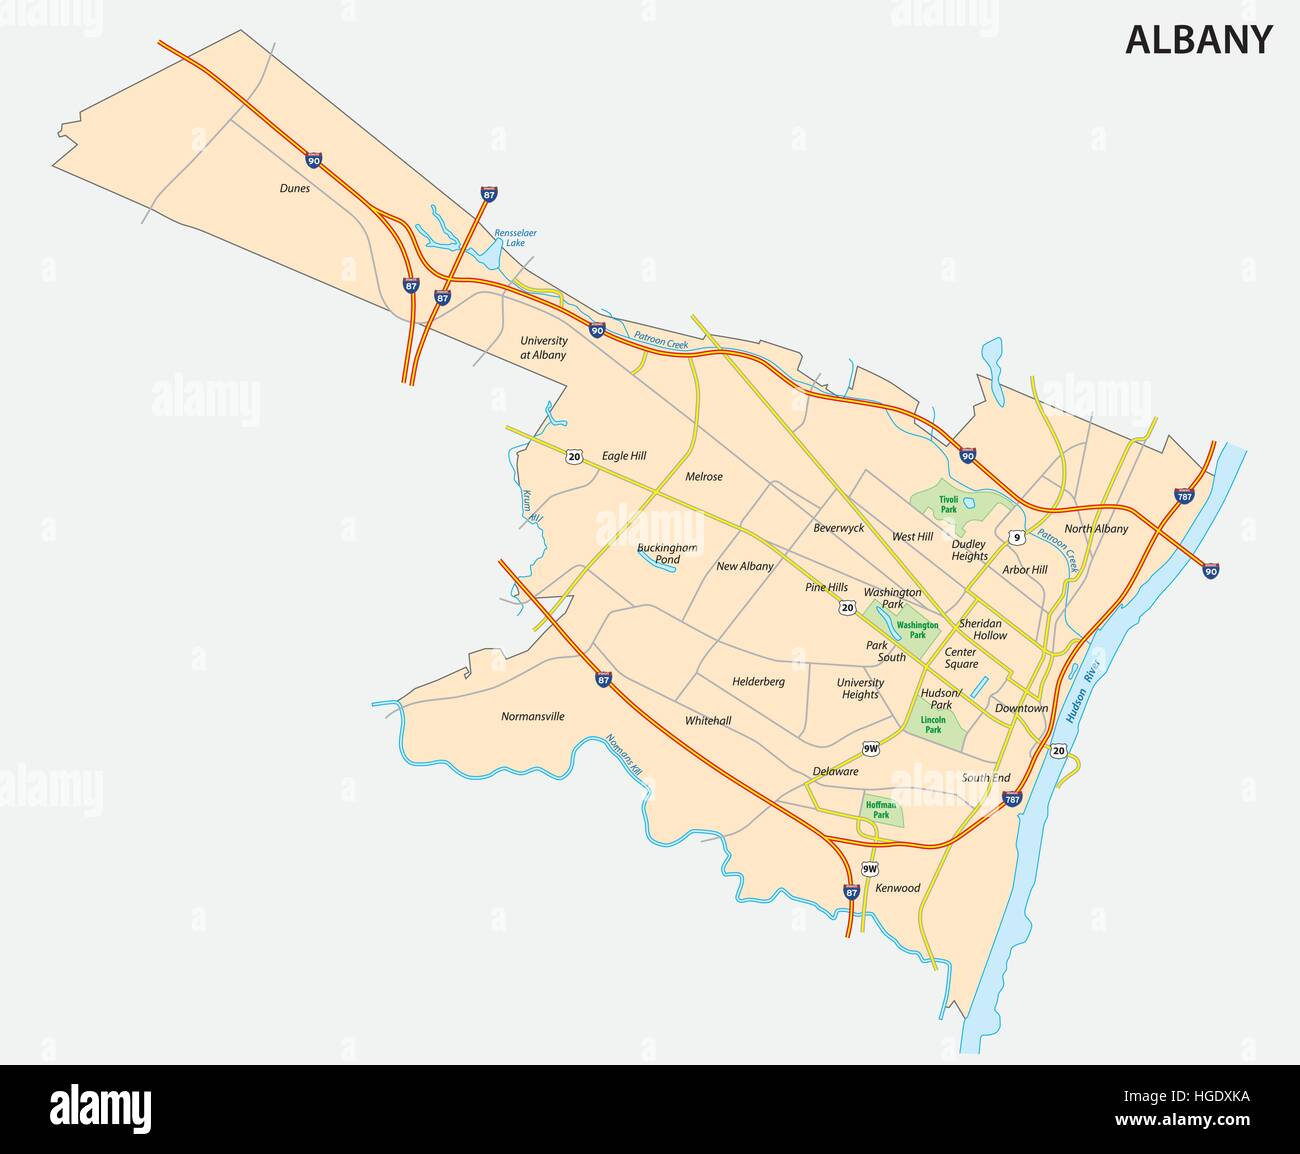 map of Albany the capital of the US State of New York Stock Vector On The Map Where Is Albany New York Us on colonie ny map, albony to new york city map, upstate ny casino map,